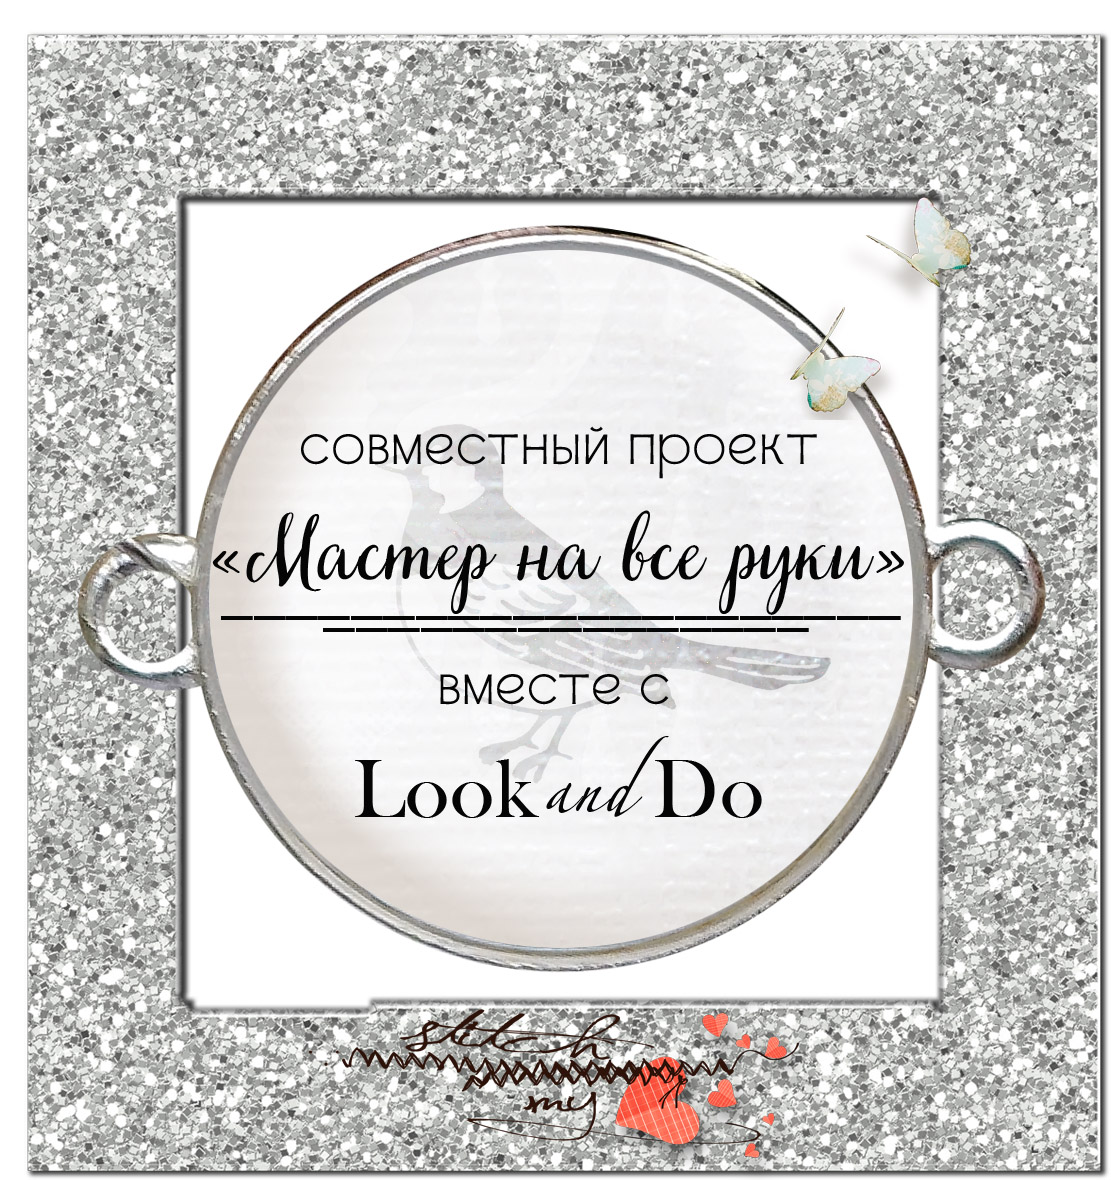 Look and Do!